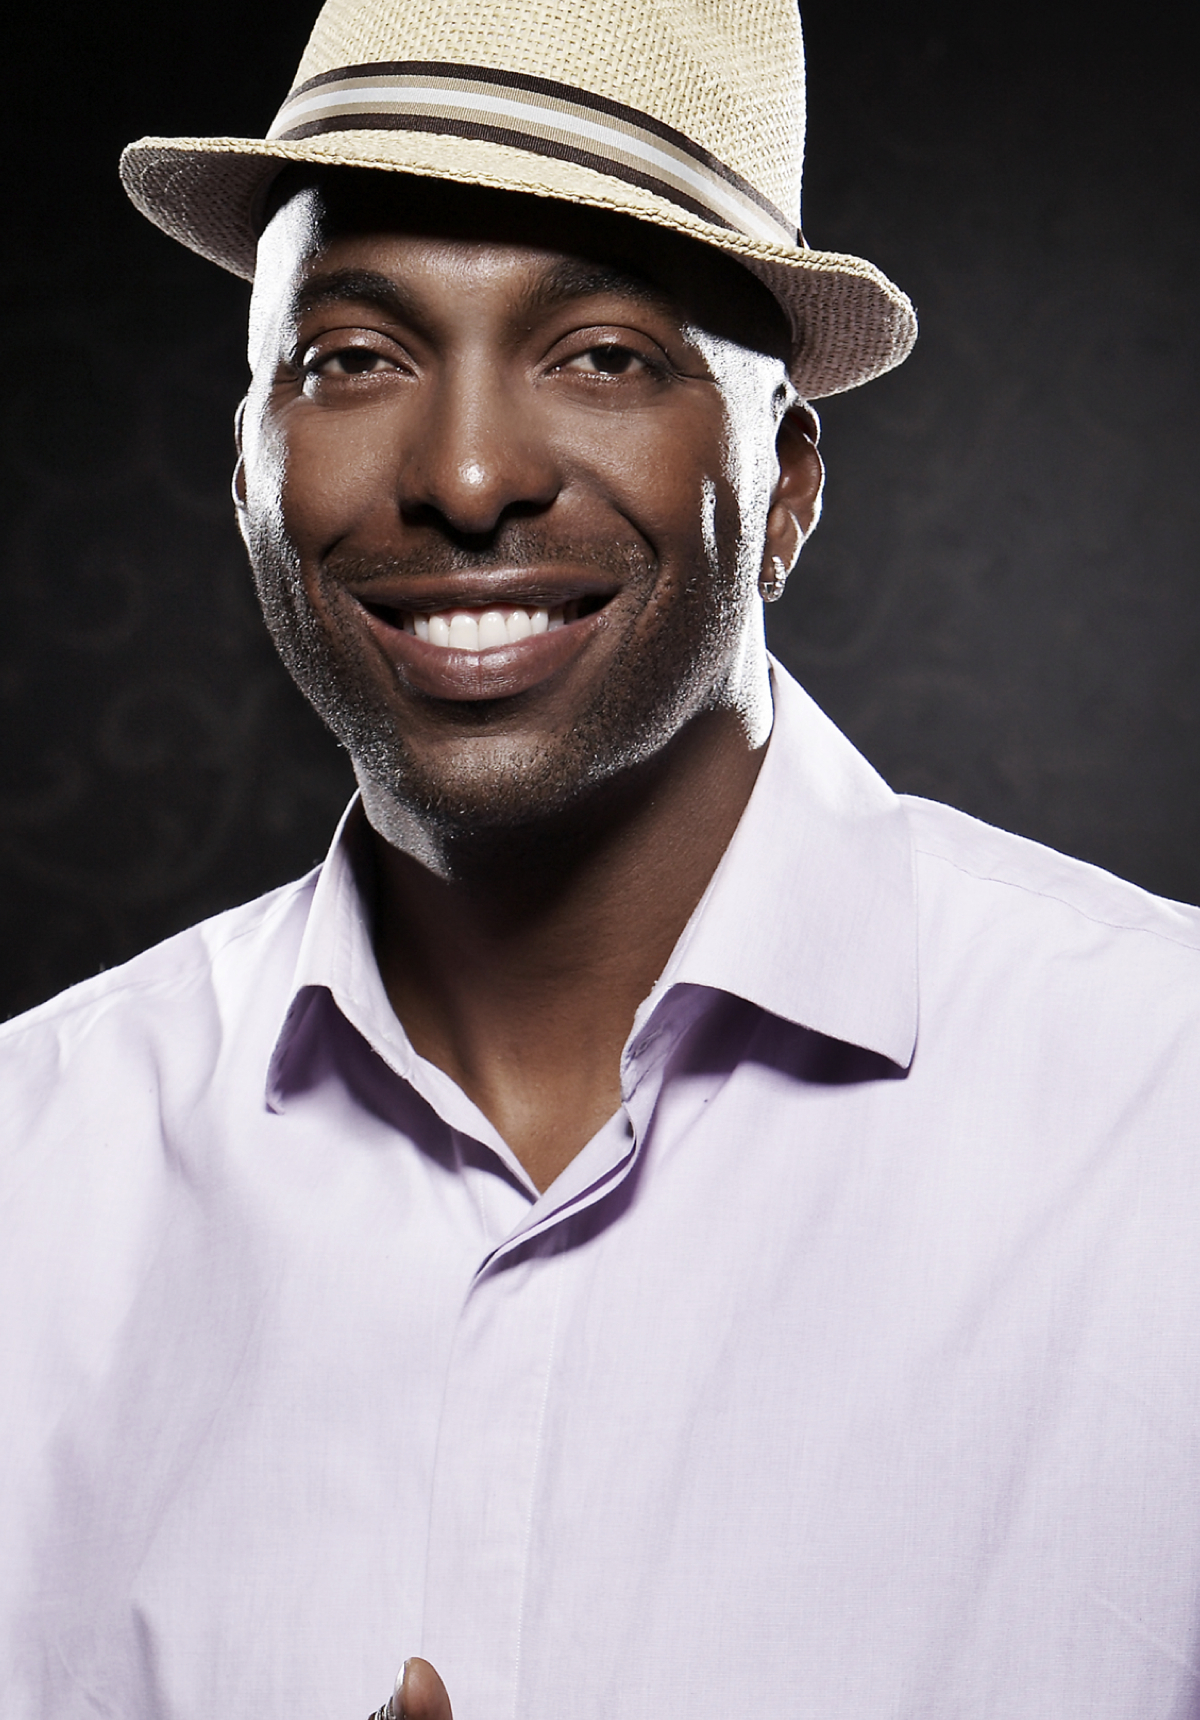 The American former basketball player John Salley